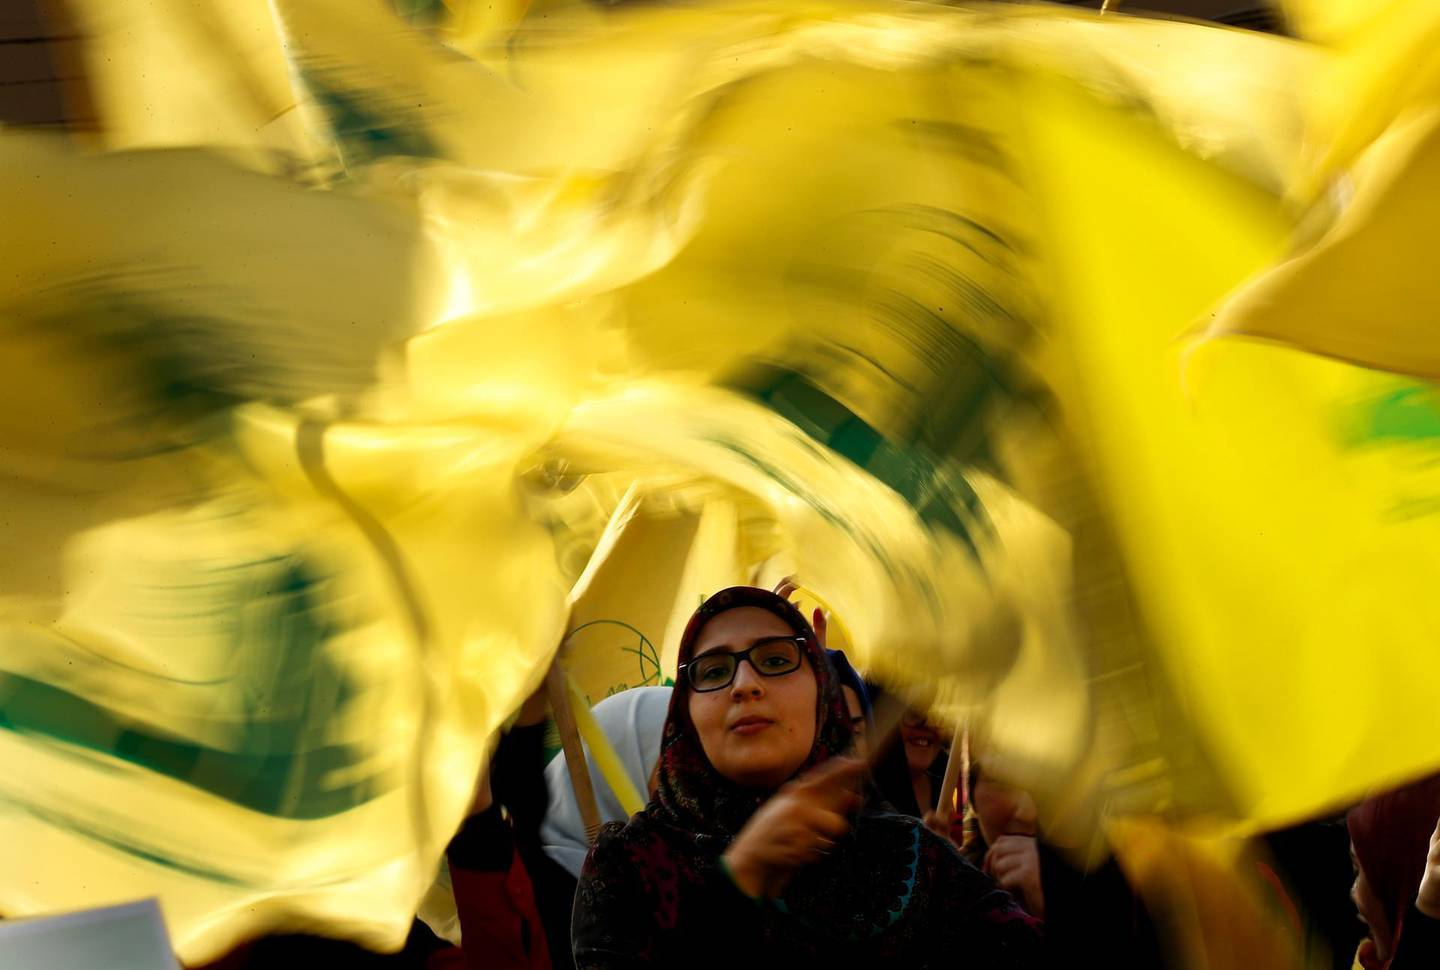 """A Hezbollah supporter waves her group flags during an election campaign speech by Hezbollah leader Sayyed Hassan Nasrallah, in a southern suburb of Beirut, Lebanon, Friday, April 13, 2018. Nasrallah says Monday's attack on the T4 air base ushers in a new phase that puts Israel in a state of """"direct confrontation"""" with the Islamic Republic of Iran. (AP Photo/Hussein Malla)"""